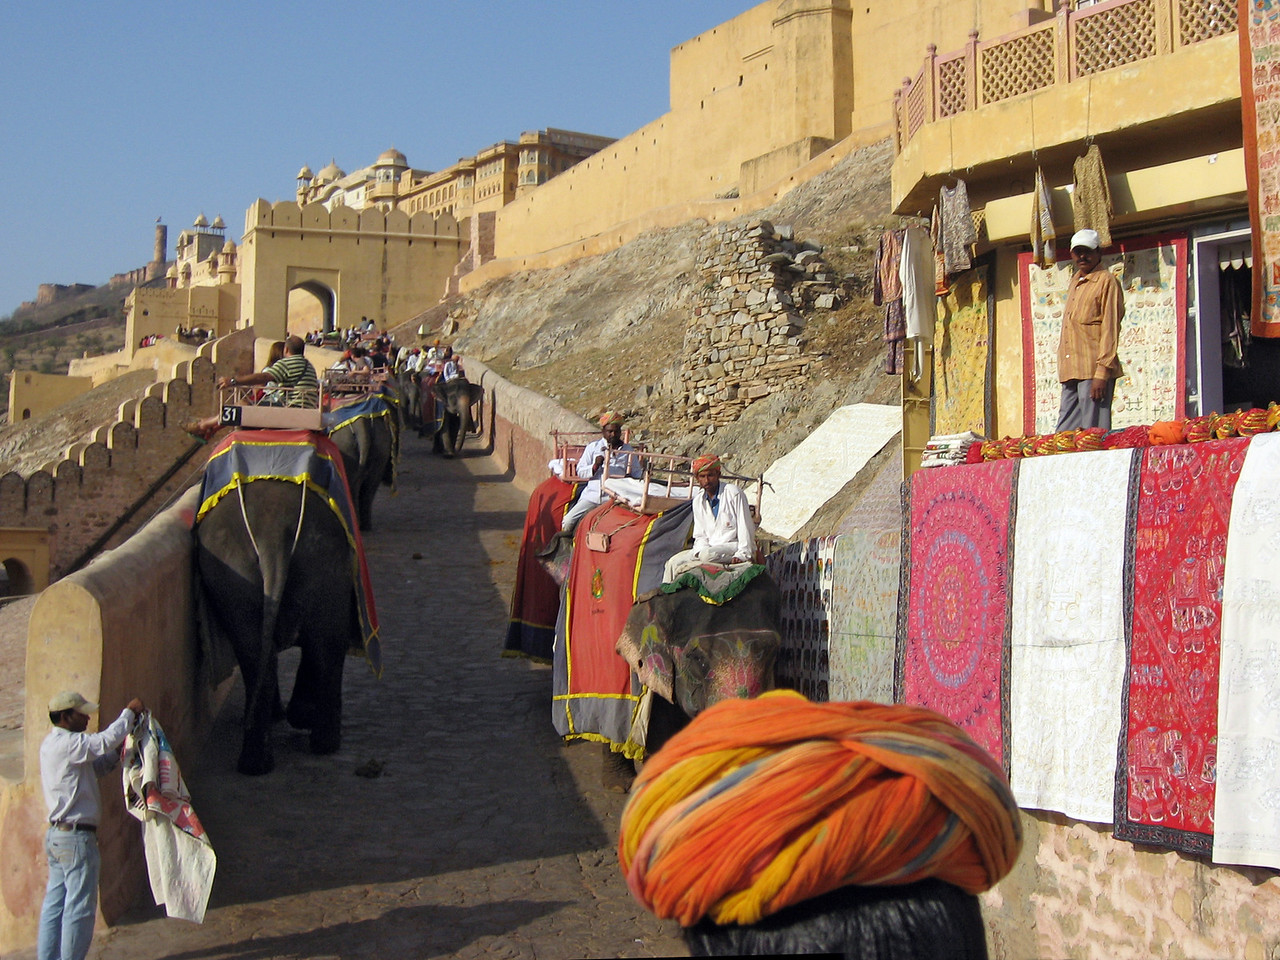 Jodhpur - Mehrangarh Fort (AKA Citadel of the Sun) perched 400 feet above the city is among India's largest.  Built in 1459 with many subsequent additions by its succeeding rulers.